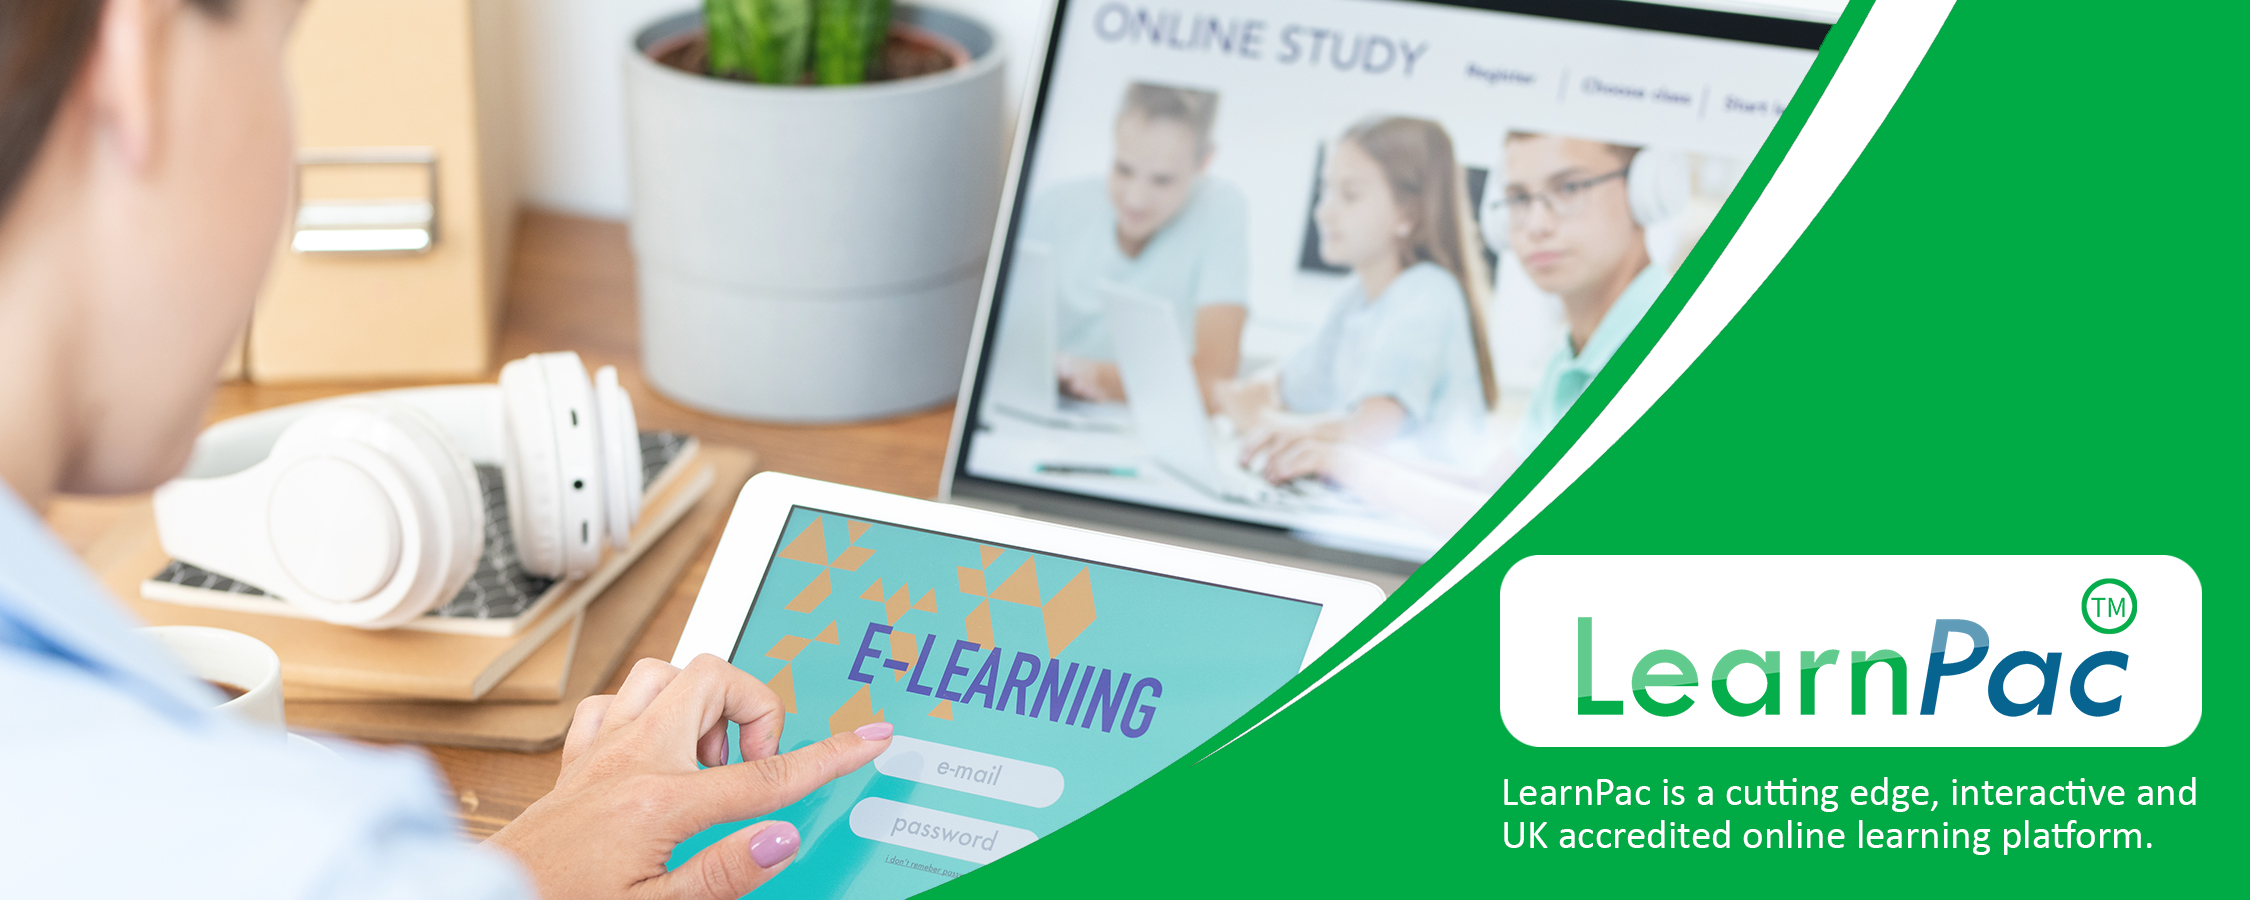 Care Certificate Standard 1 - E-Learning Courses - LearnPac Systems UK -